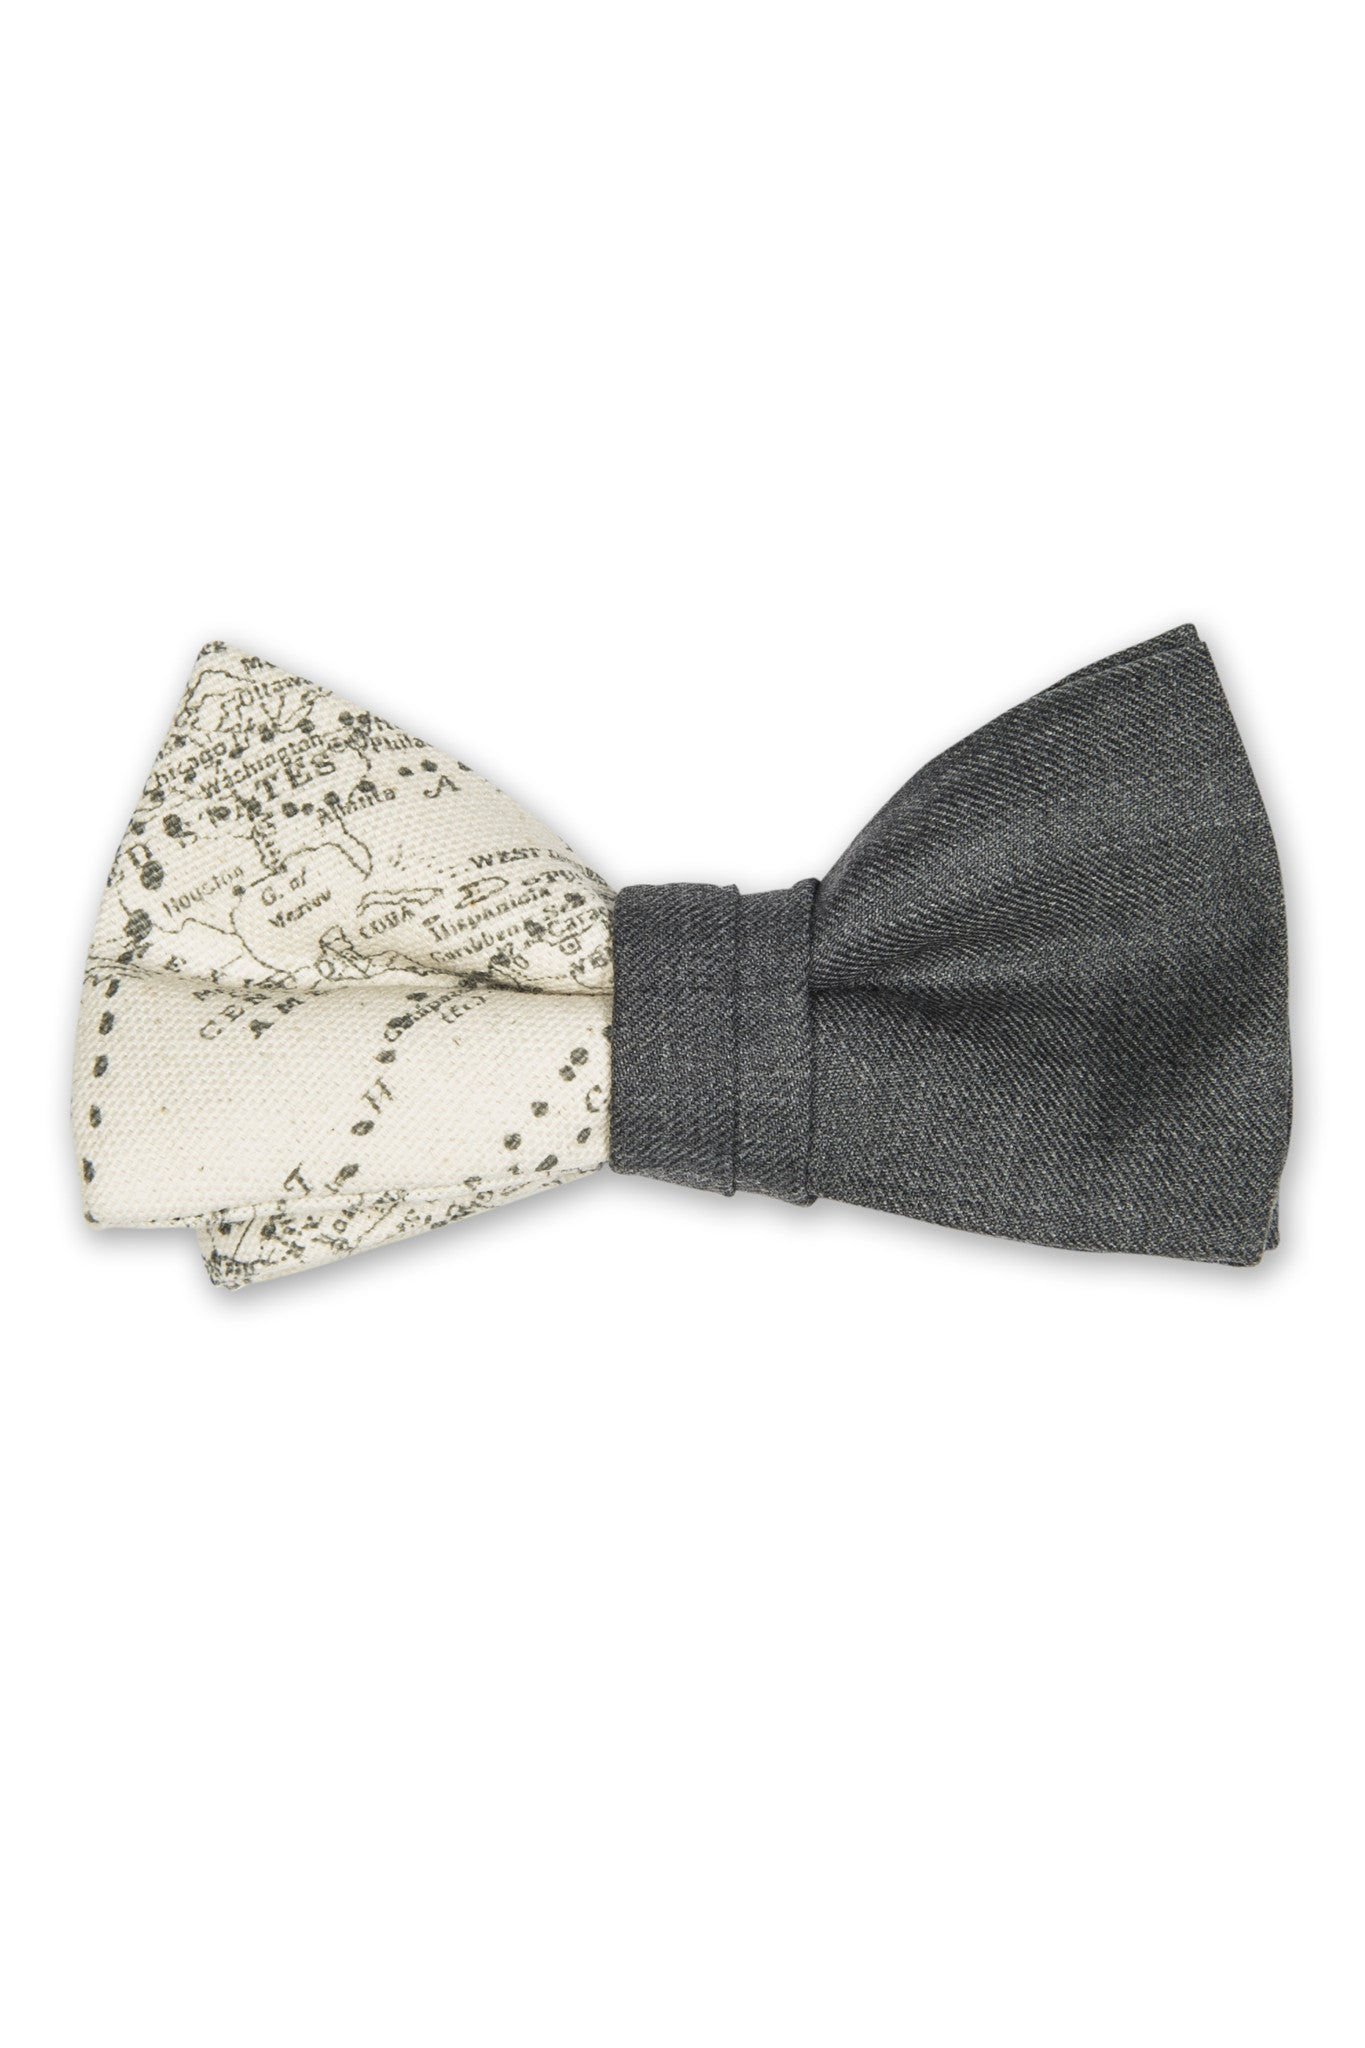 Duo bow tie with map fabric - Noeud pap en duo avec tissu mappemonde